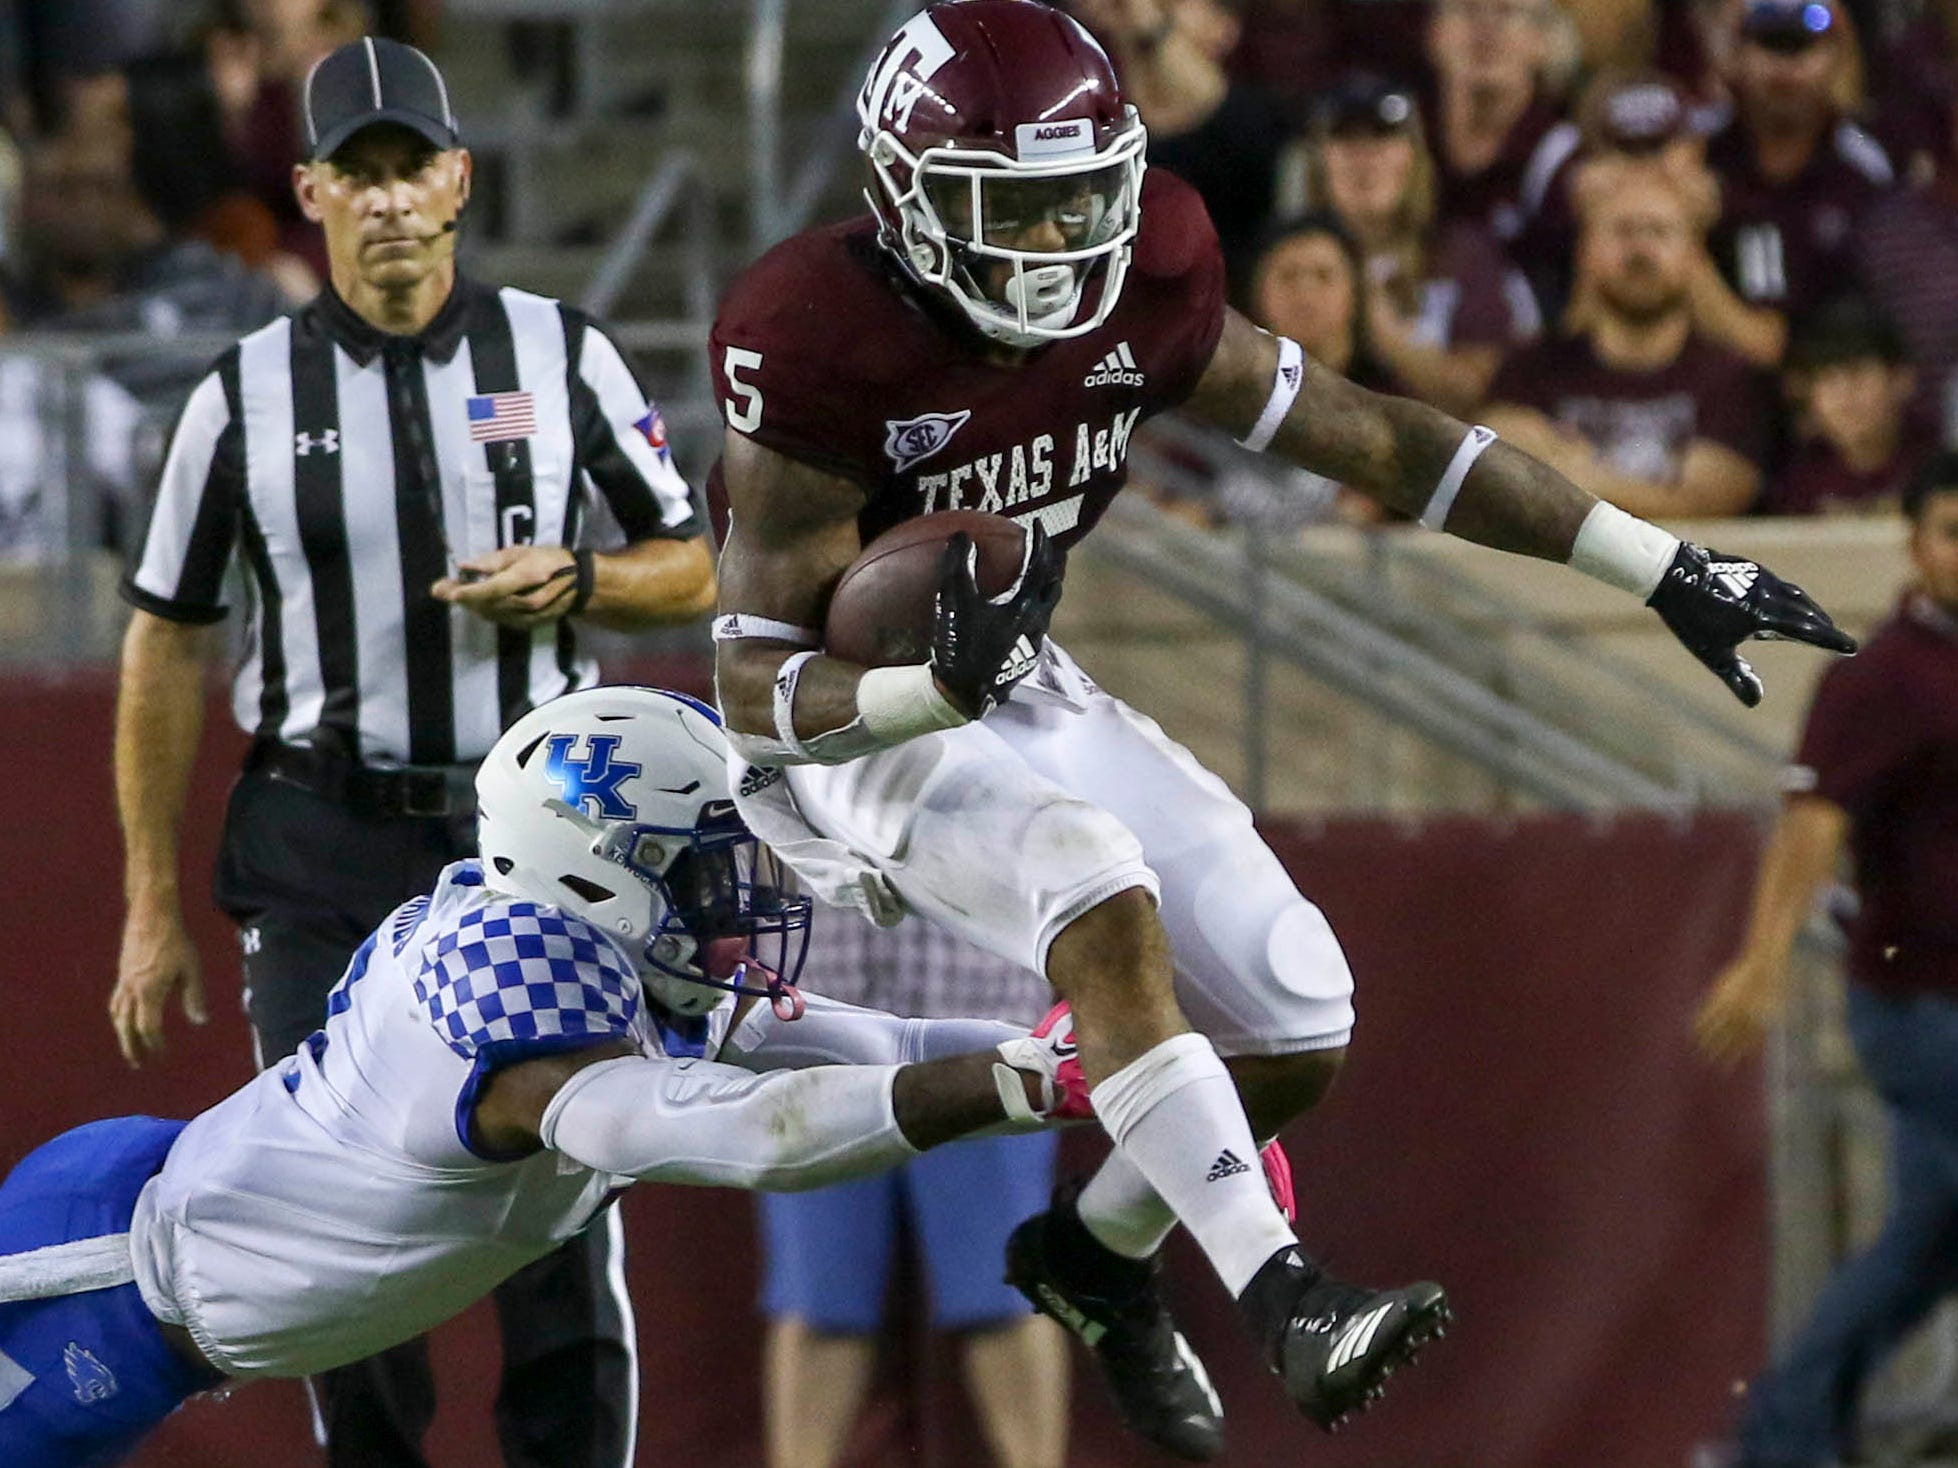 Texas A&M Aggies running back Trayveon Williams (5) evades the tackle of a Kentucky Wildcats defender during the second quarter at Kyle Field.